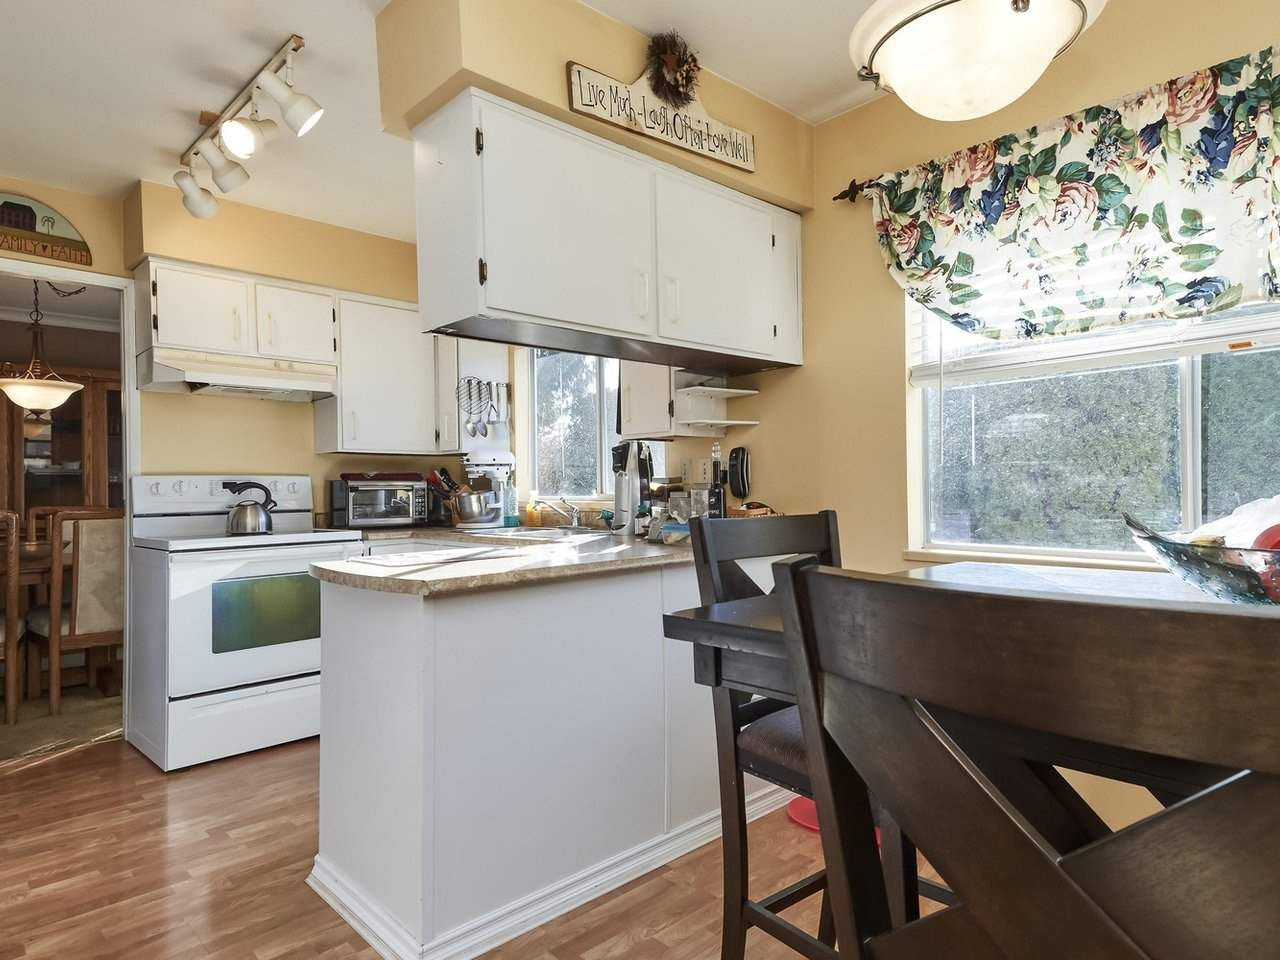 Photo 12: Photos: 4880 FORTUNE AVENUE in Richmond: Steveston North House for sale : MLS®# R2435063